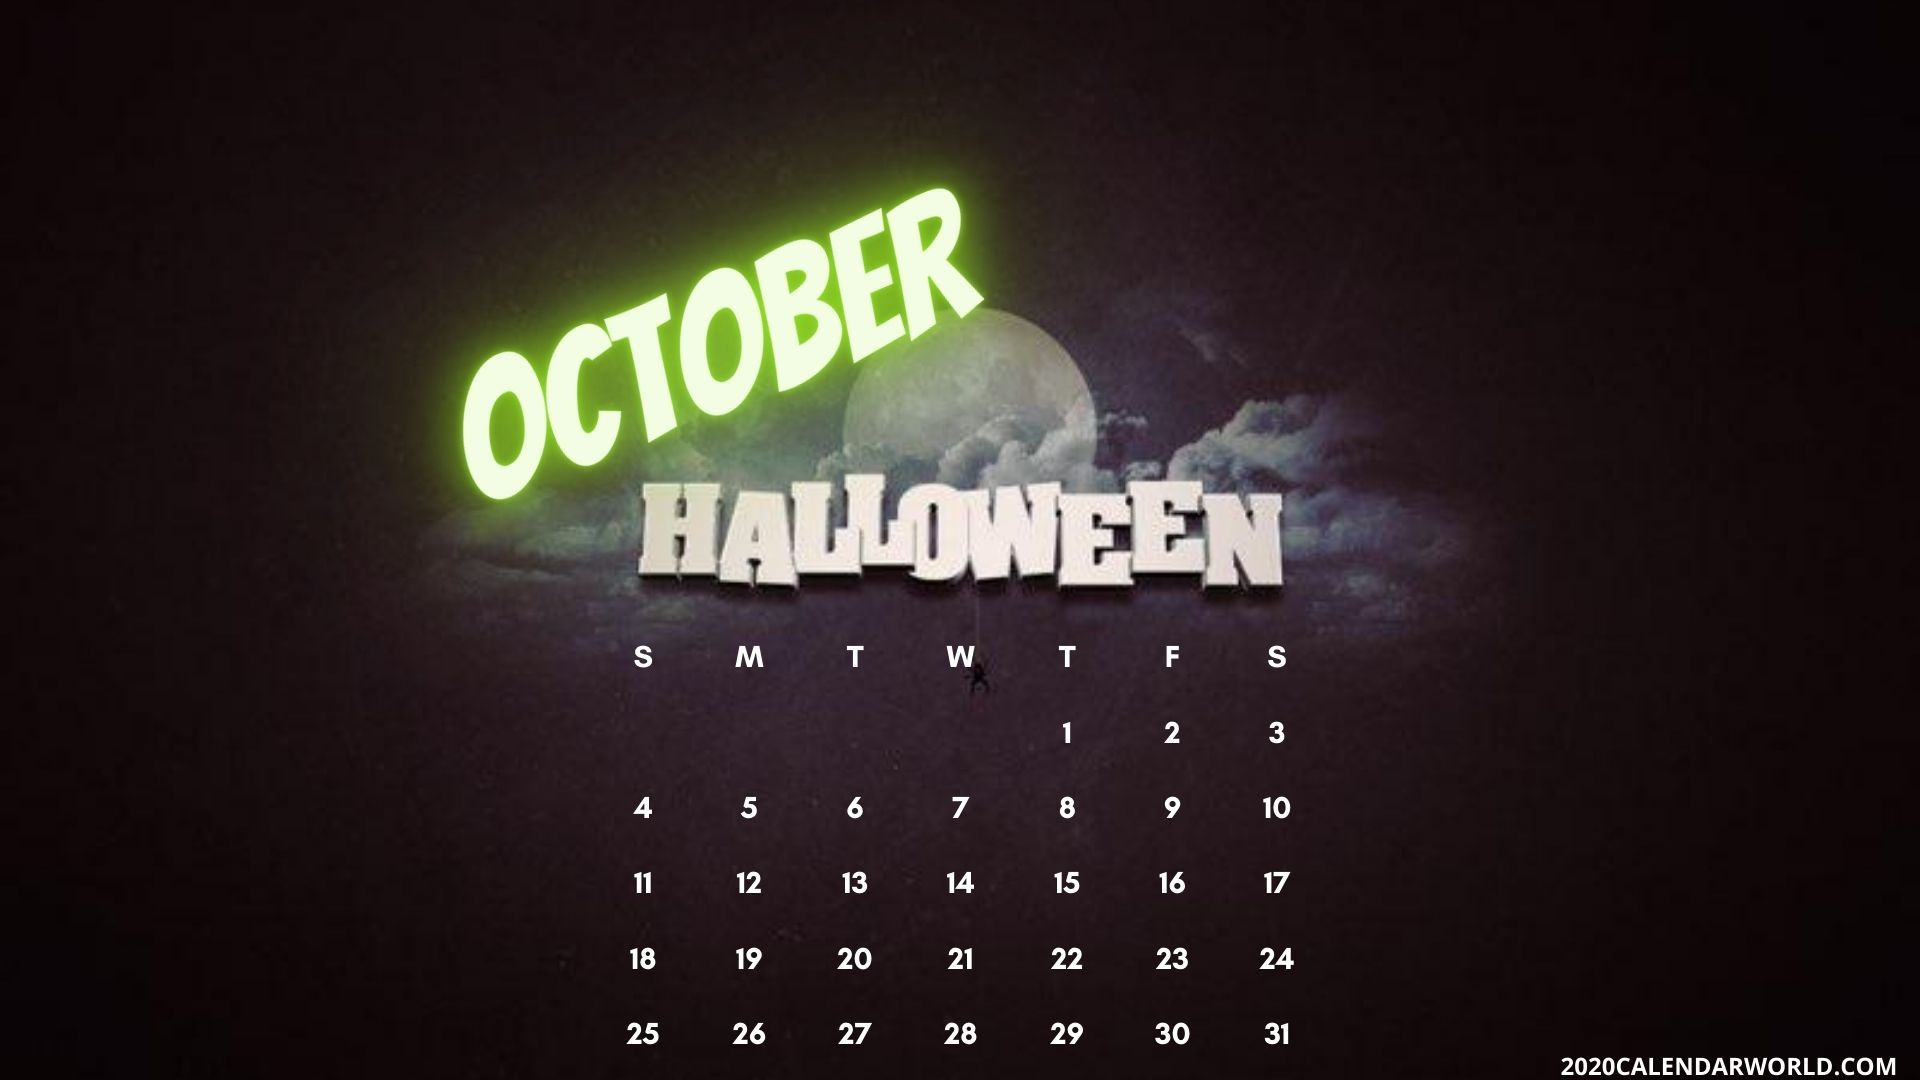 Halloween October 2020 month calendar desktop wallpaper in 2020 1920x1080